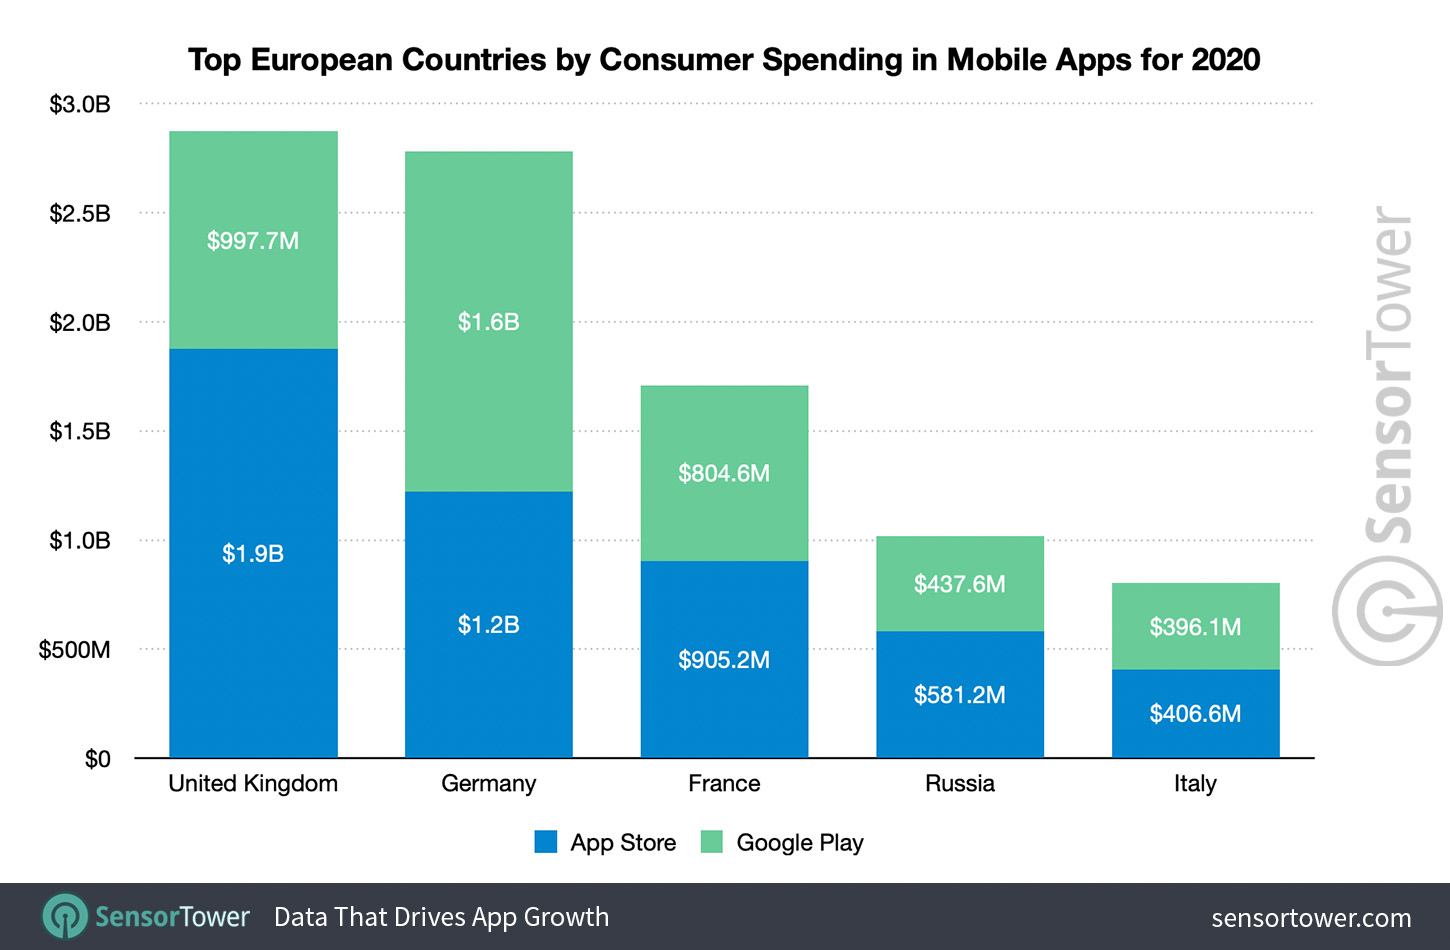 Top European Countries by Consumer Spending in Mobile Apps for 2020